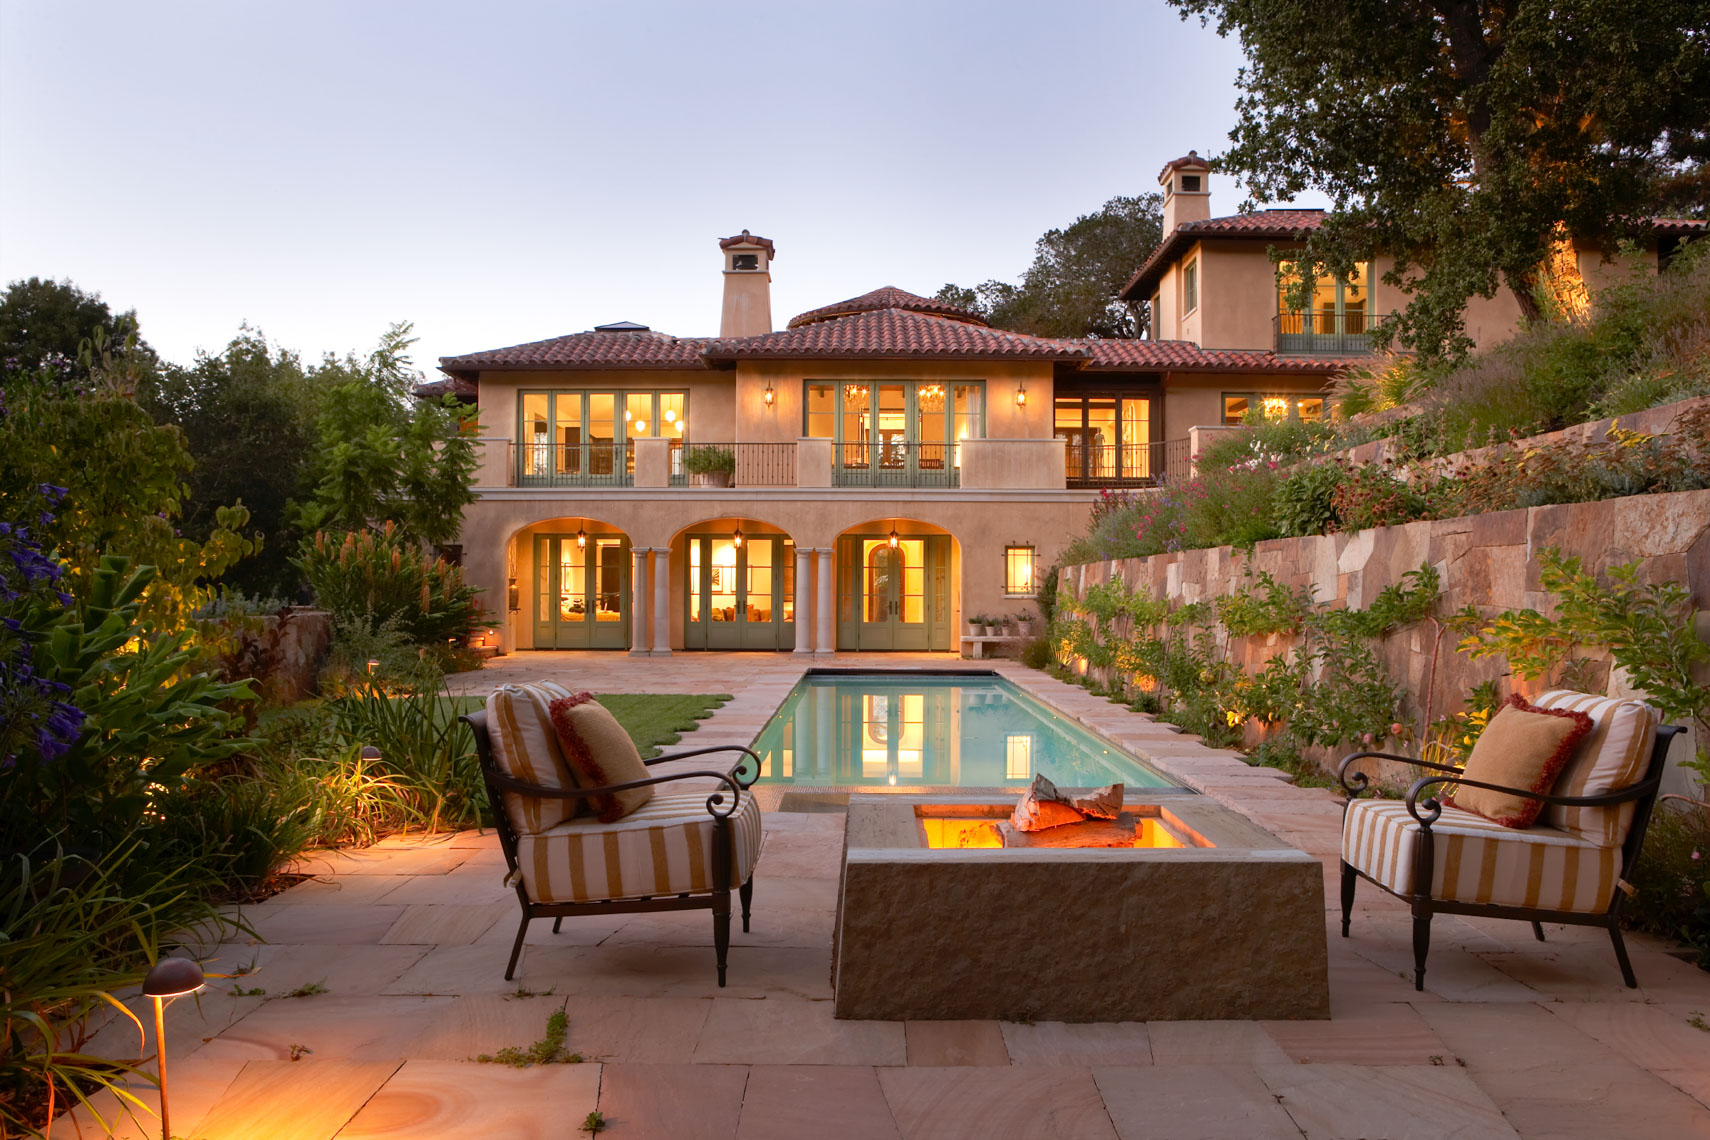 Outdoor seating around fire bowl on stone patio with pool and hotel